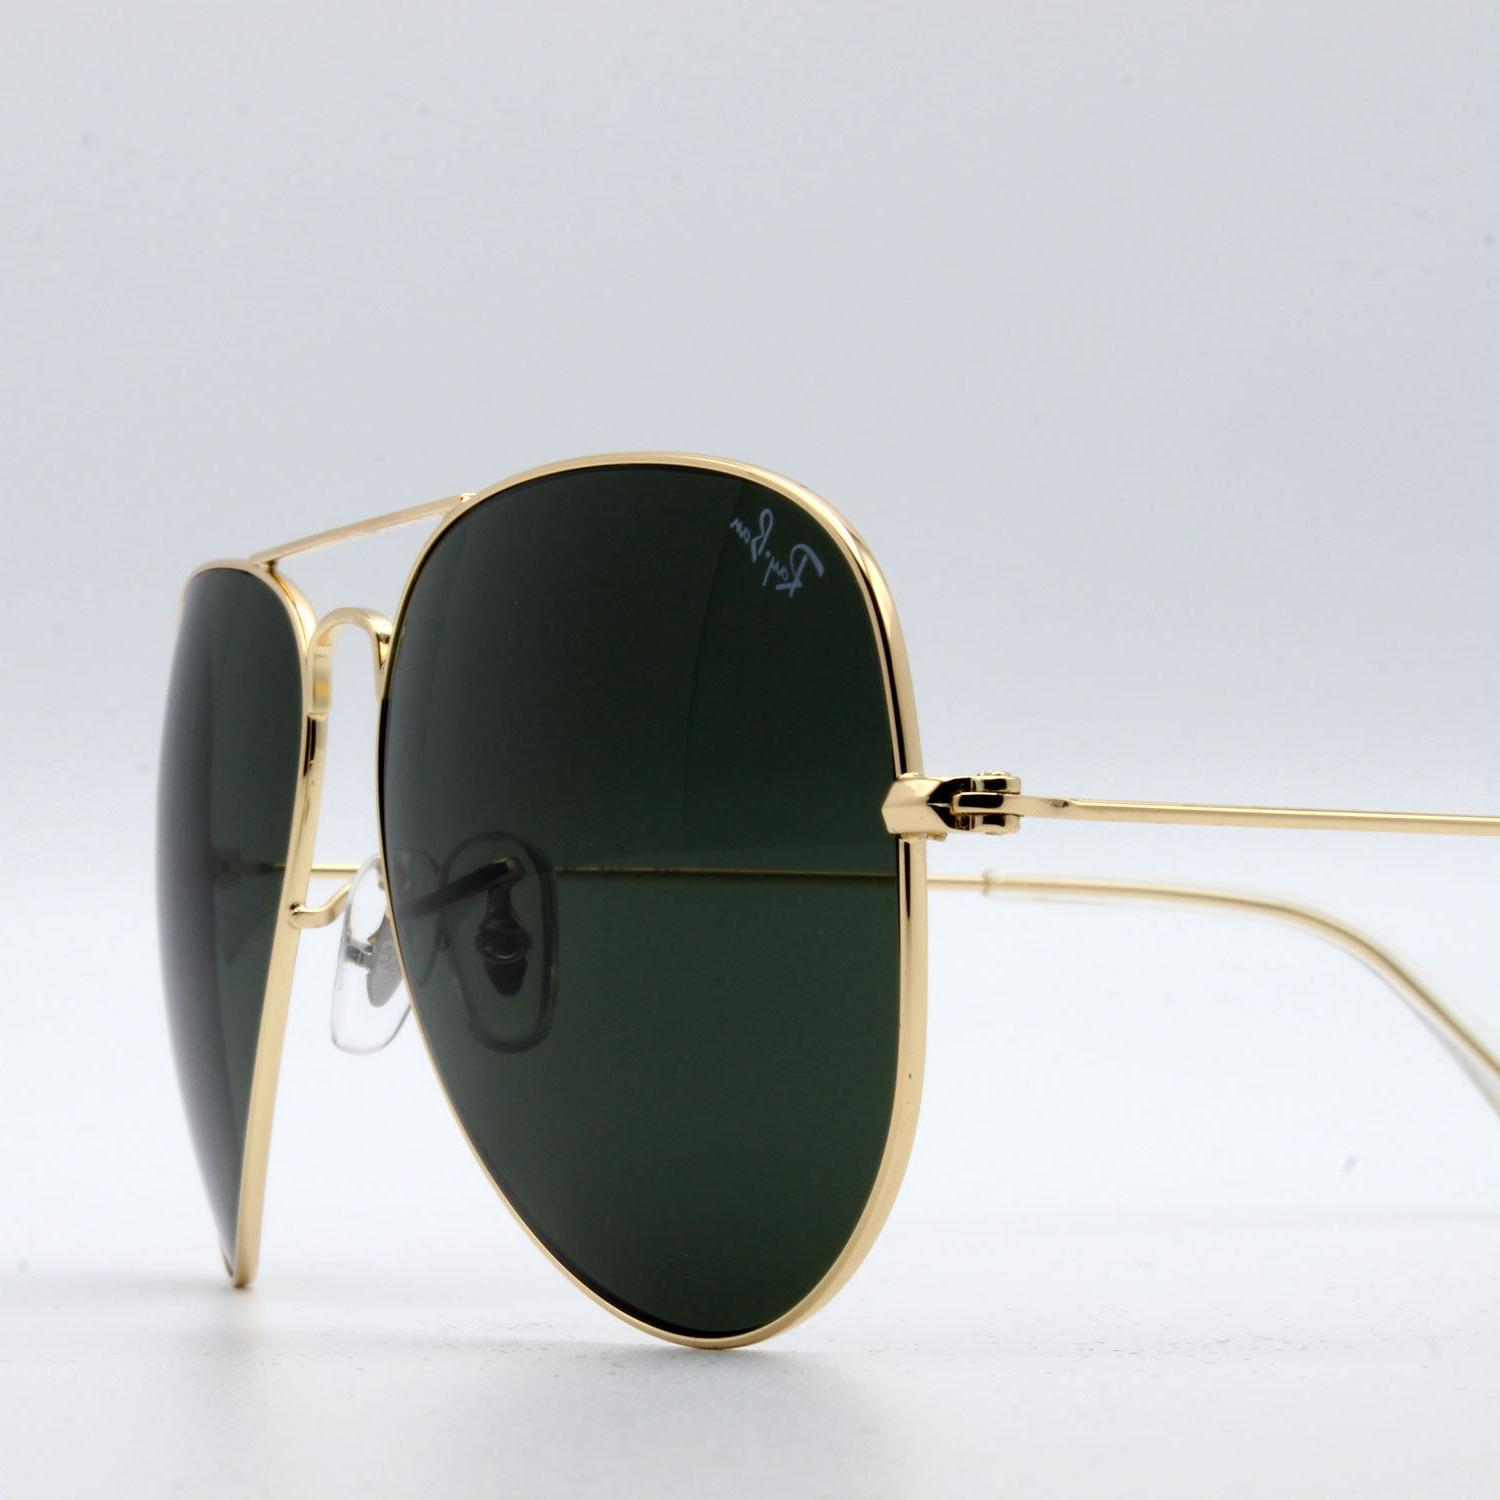 Ray-Ban sunglasses for men, women green gold